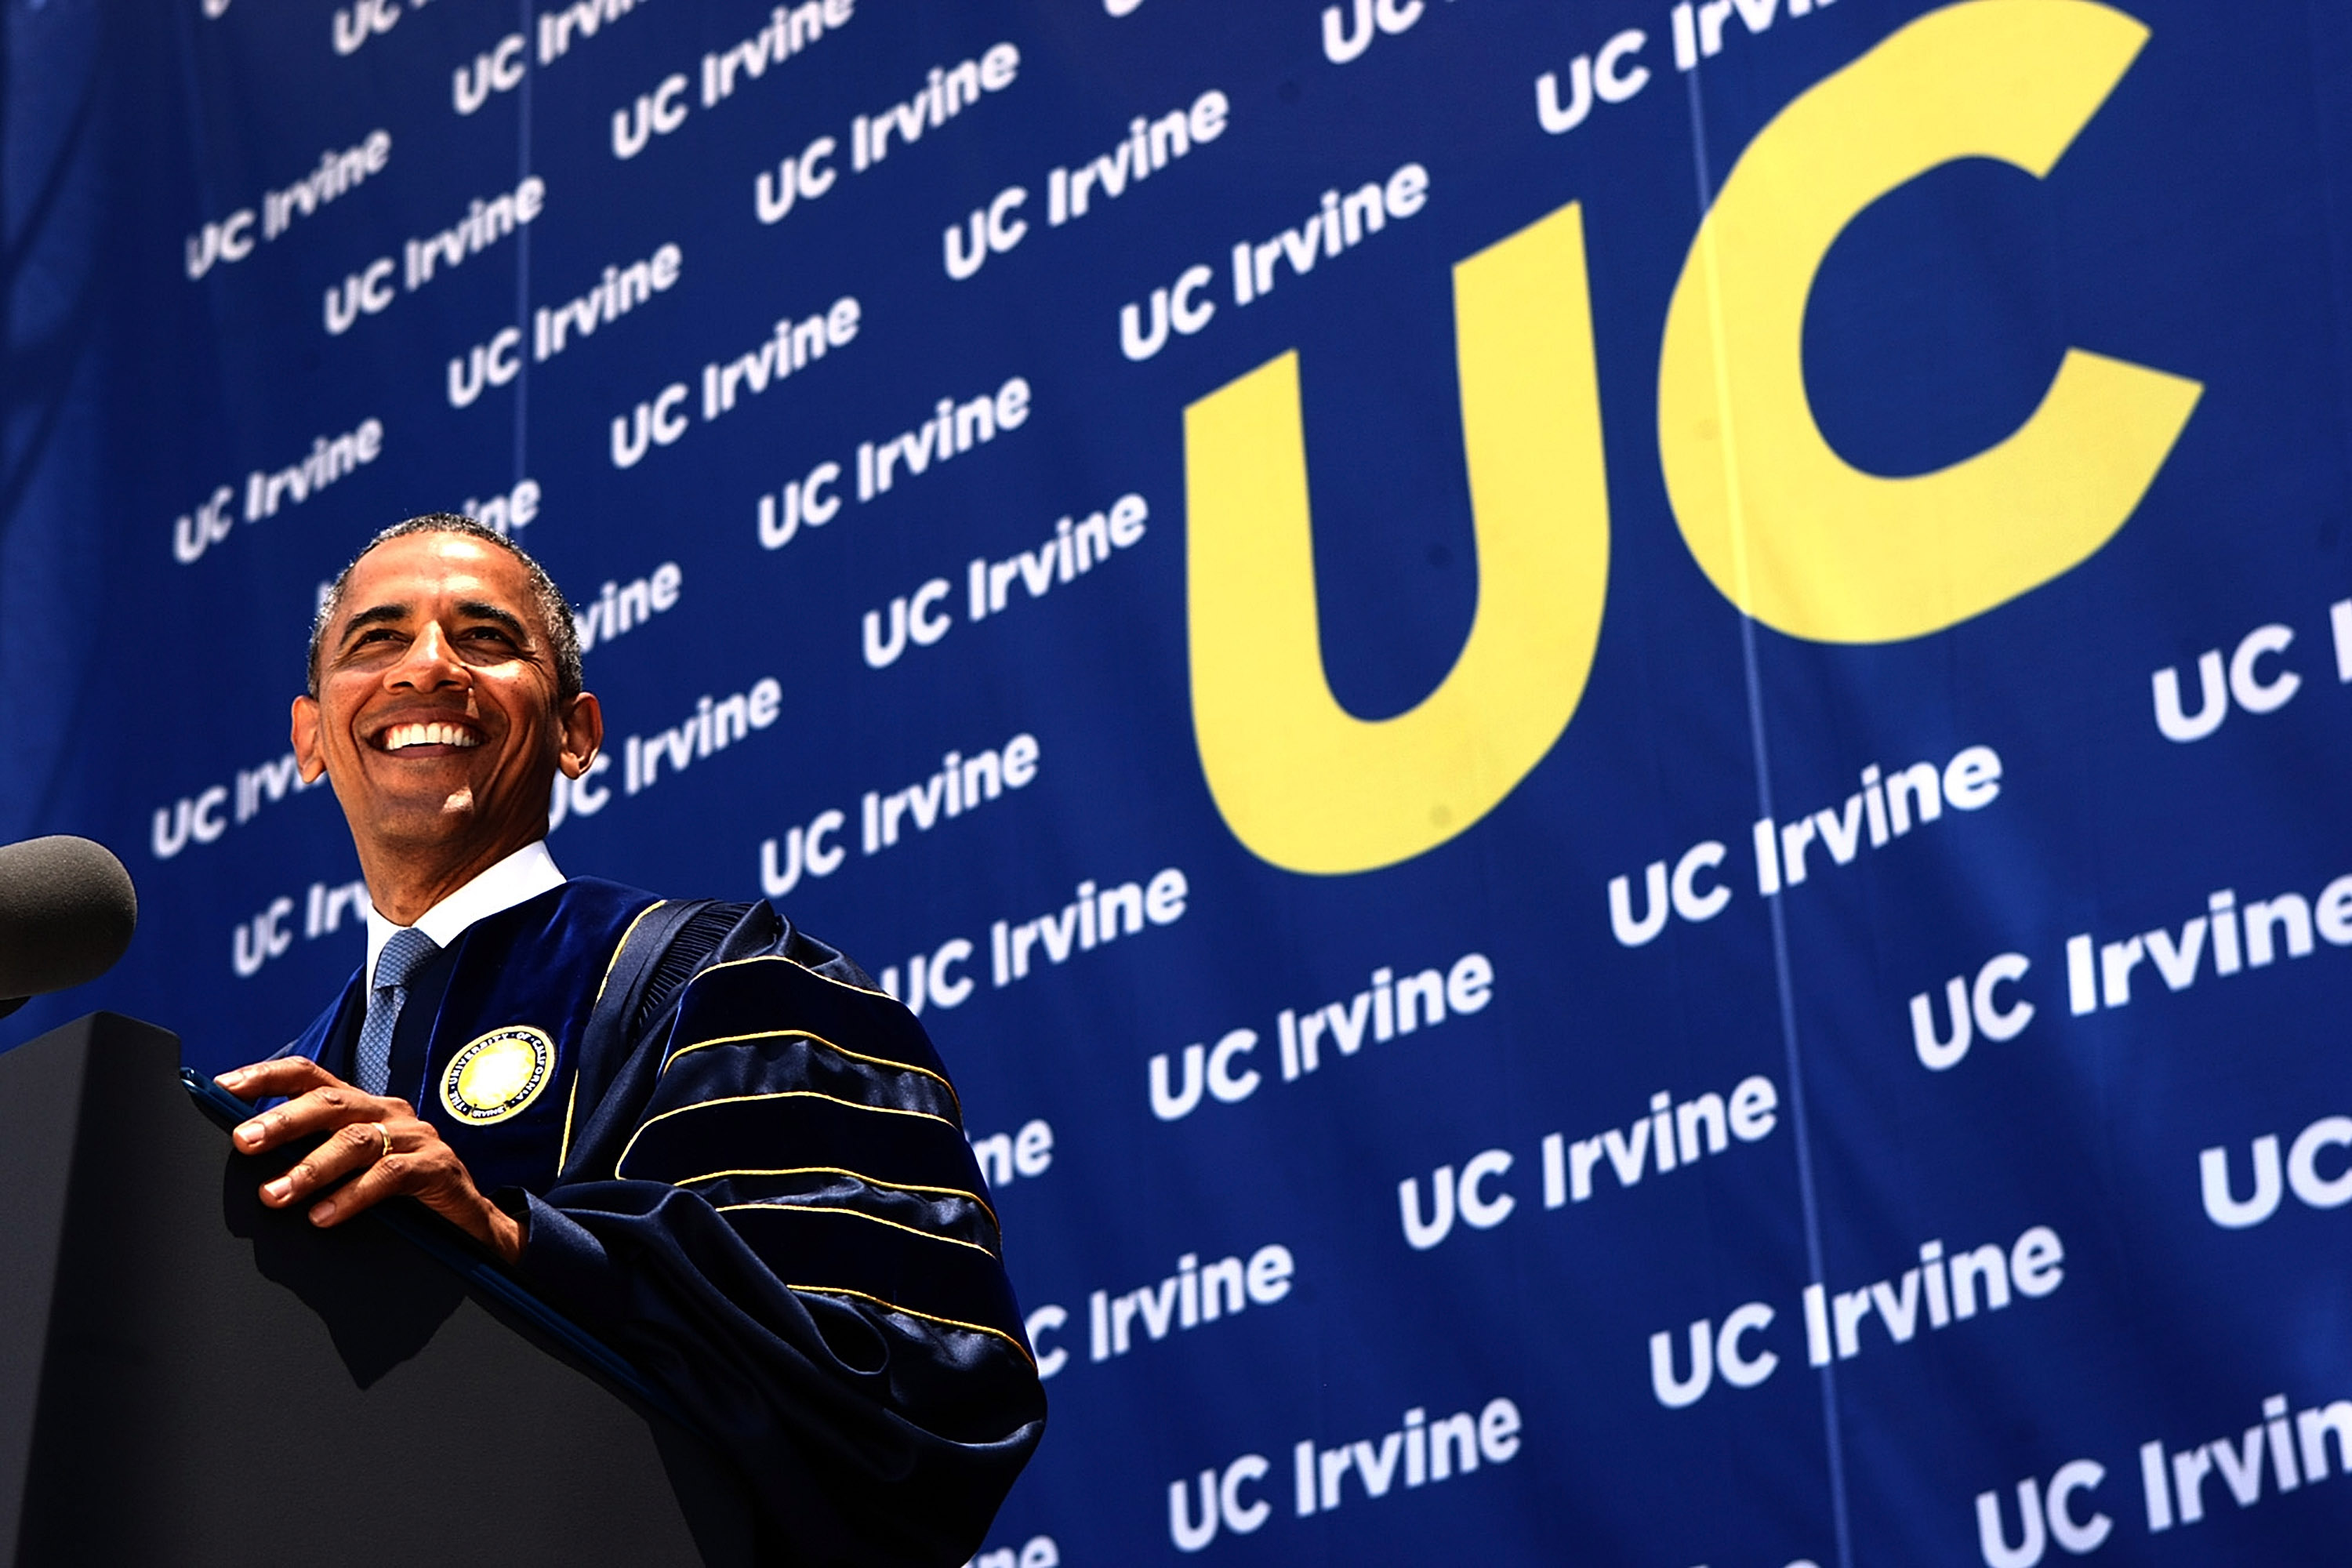 President Barack Obama speaks at the UC Irvine commencement ceremony on June 14, 2014 in Anaheim, California.